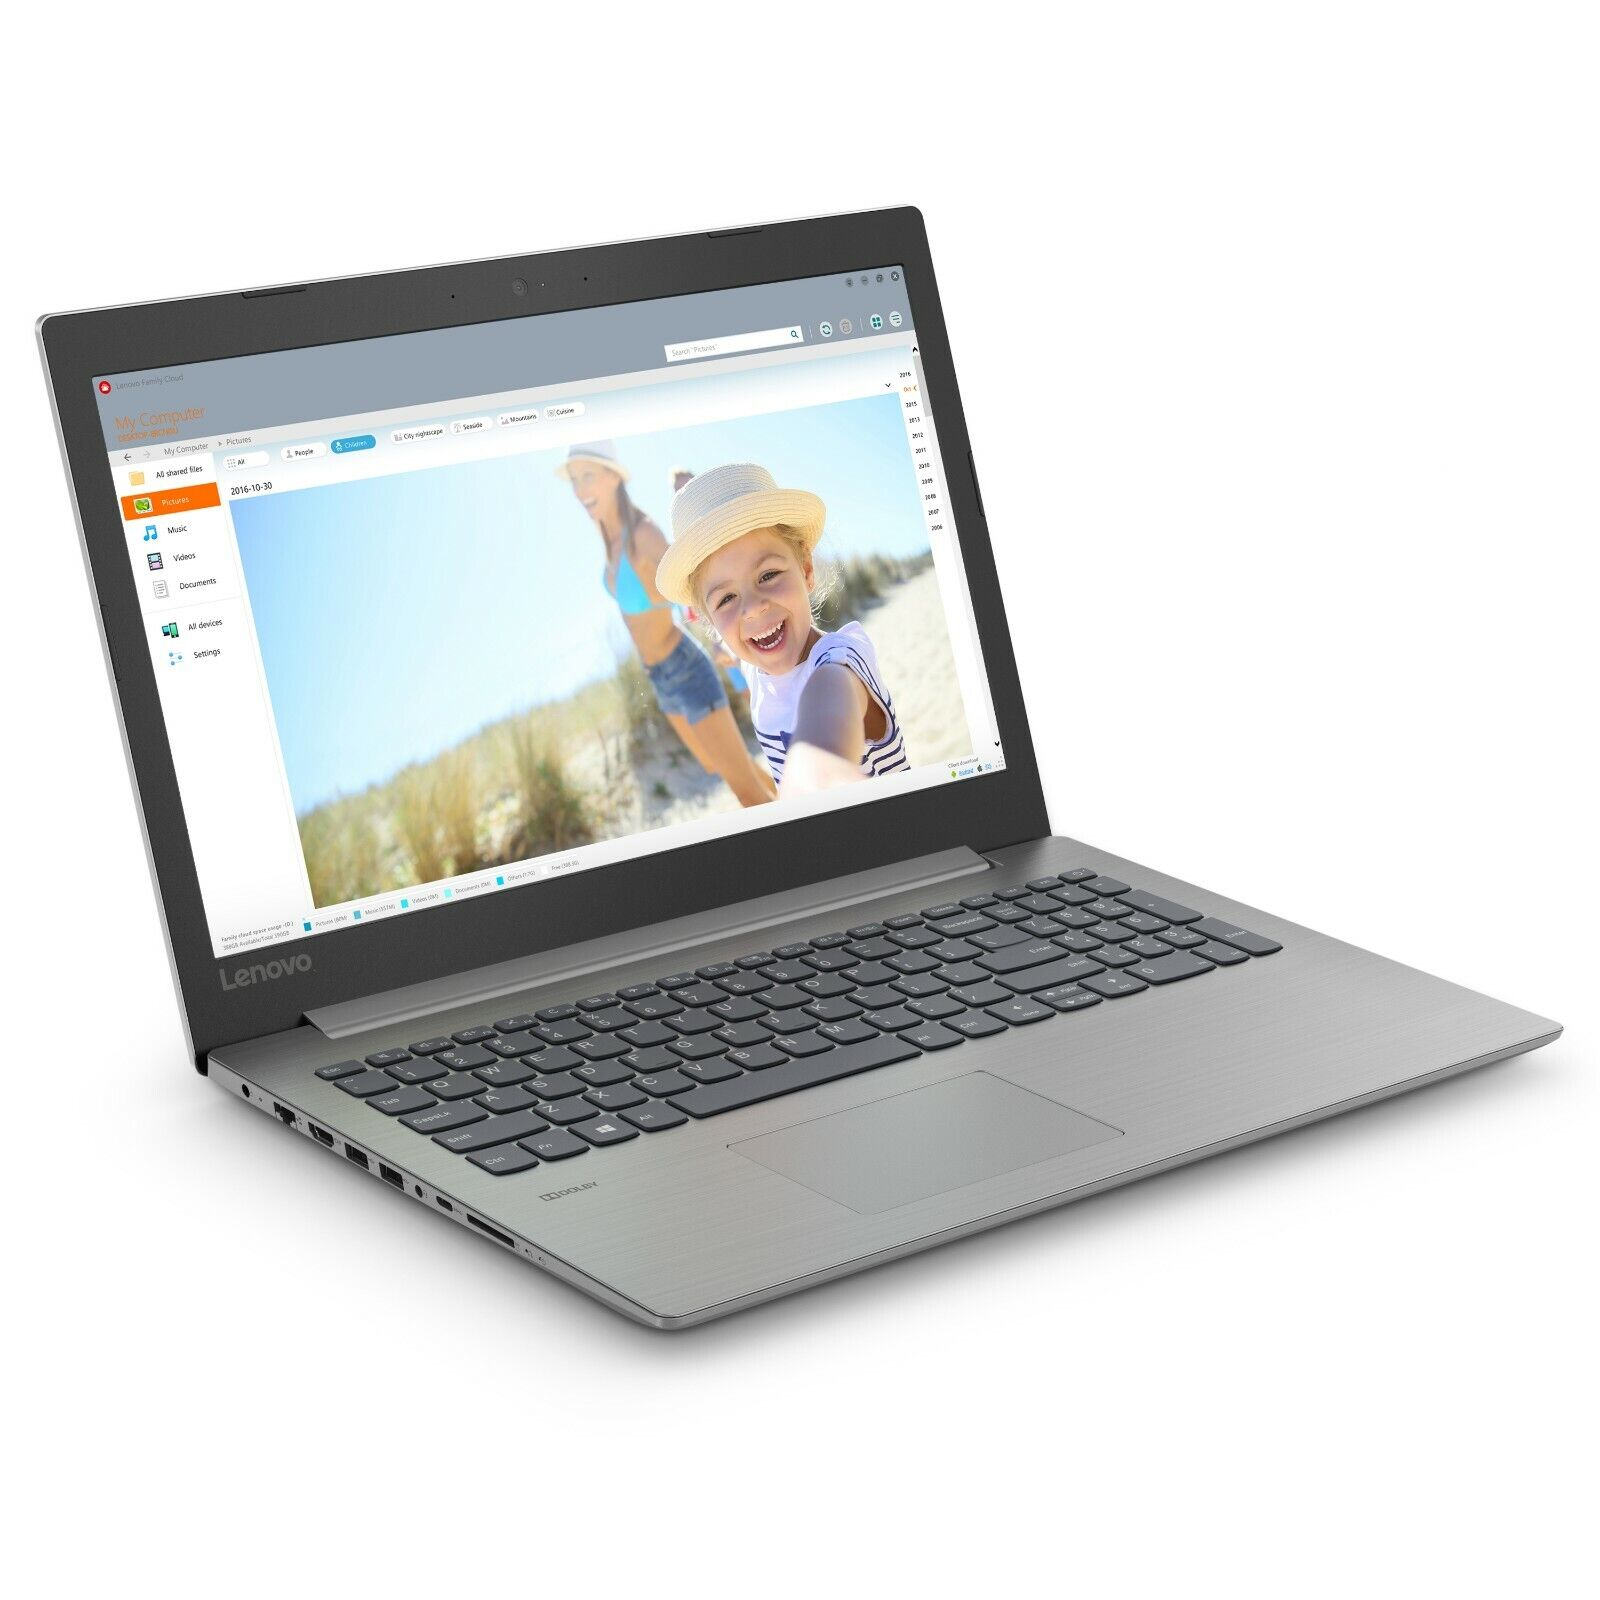 lenovo-ideapad-15-6-intel-i3-8130u-3-4ghz-4gb-ram-1tb-hdd-webcam-win-10-black